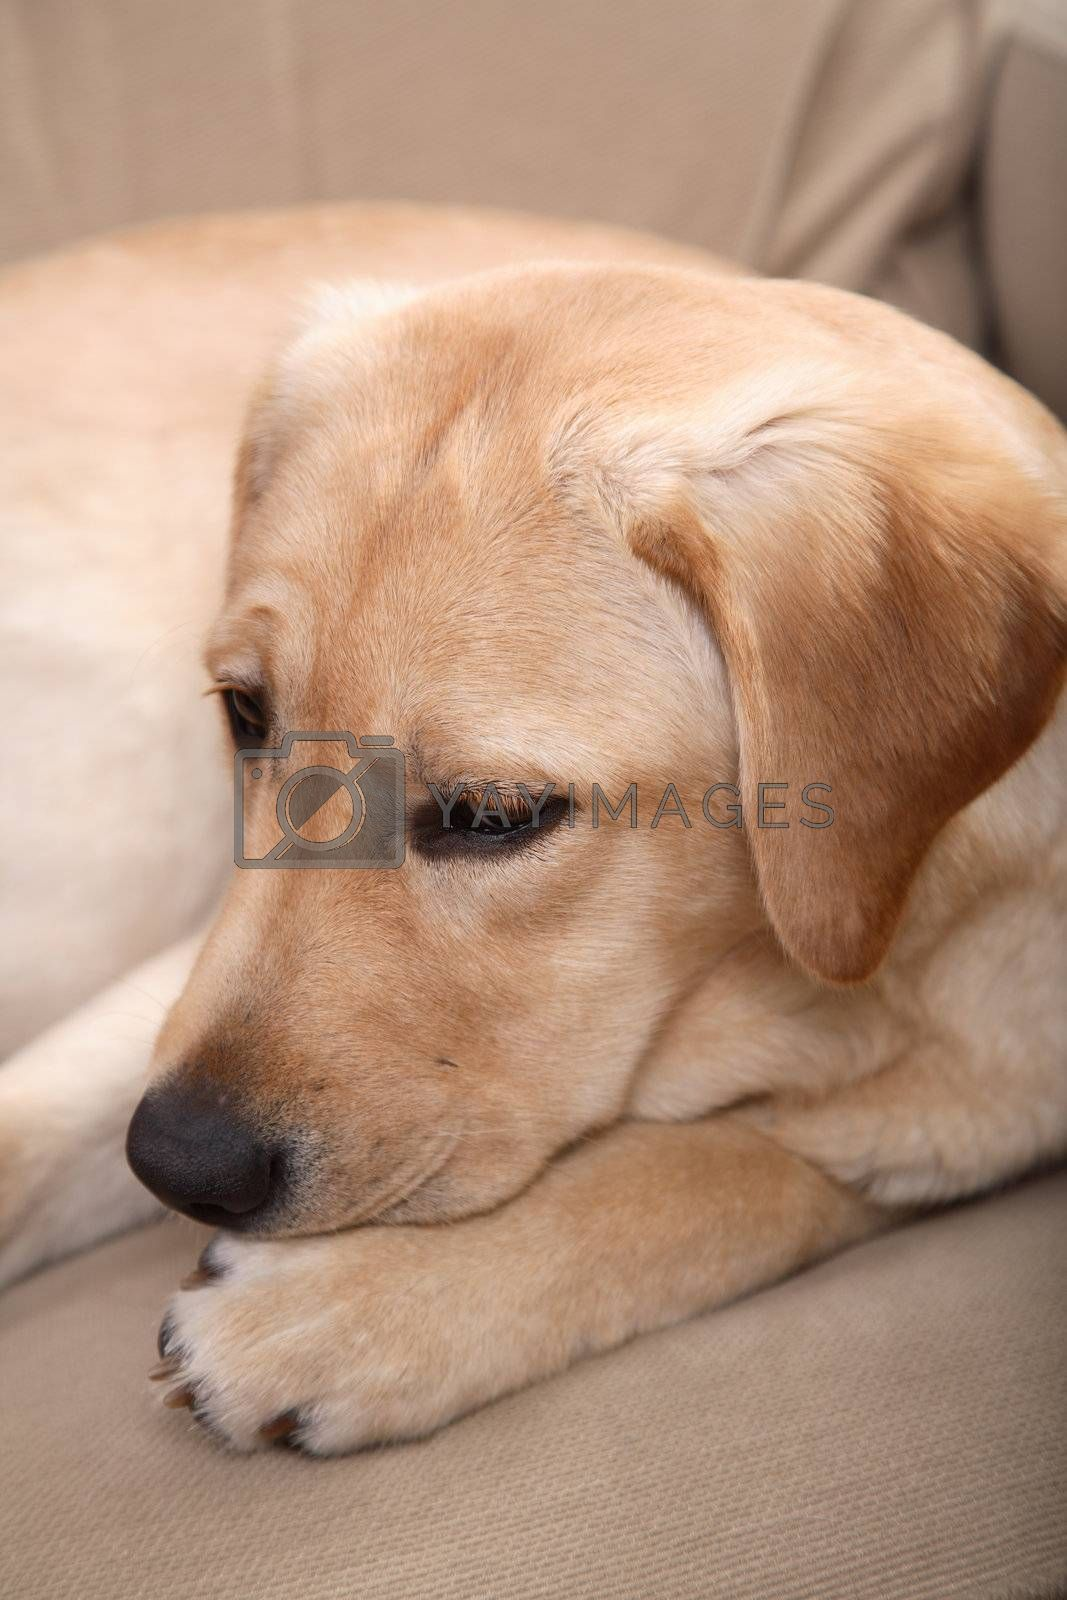 Indoor dog portrait of a Labrador Retriever